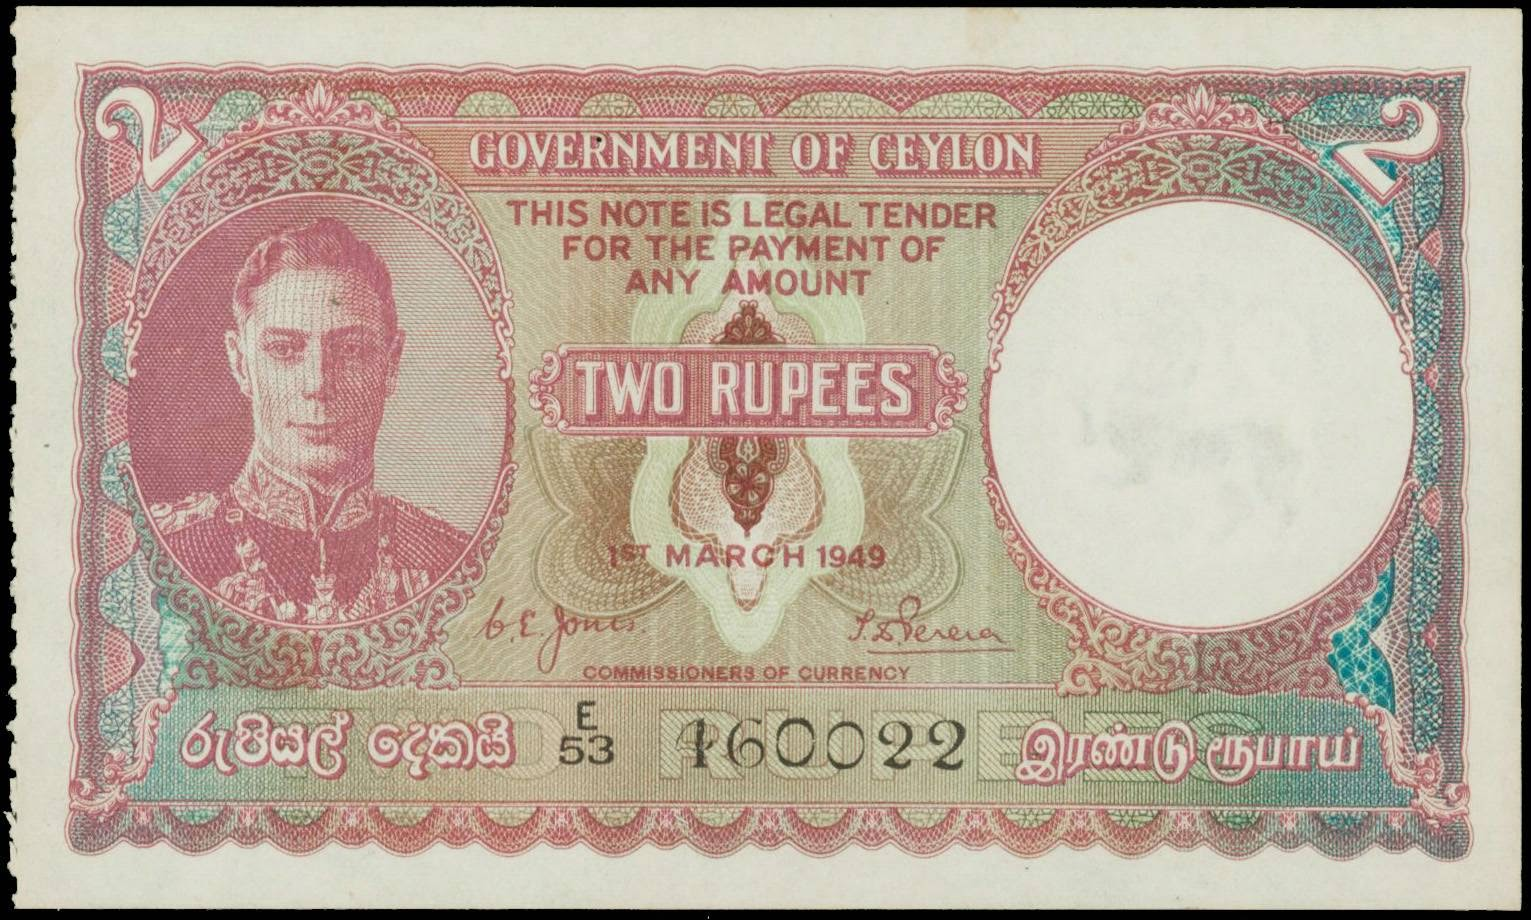 Ceylon banknotes 2 Rupees banknote 1949 King George VI